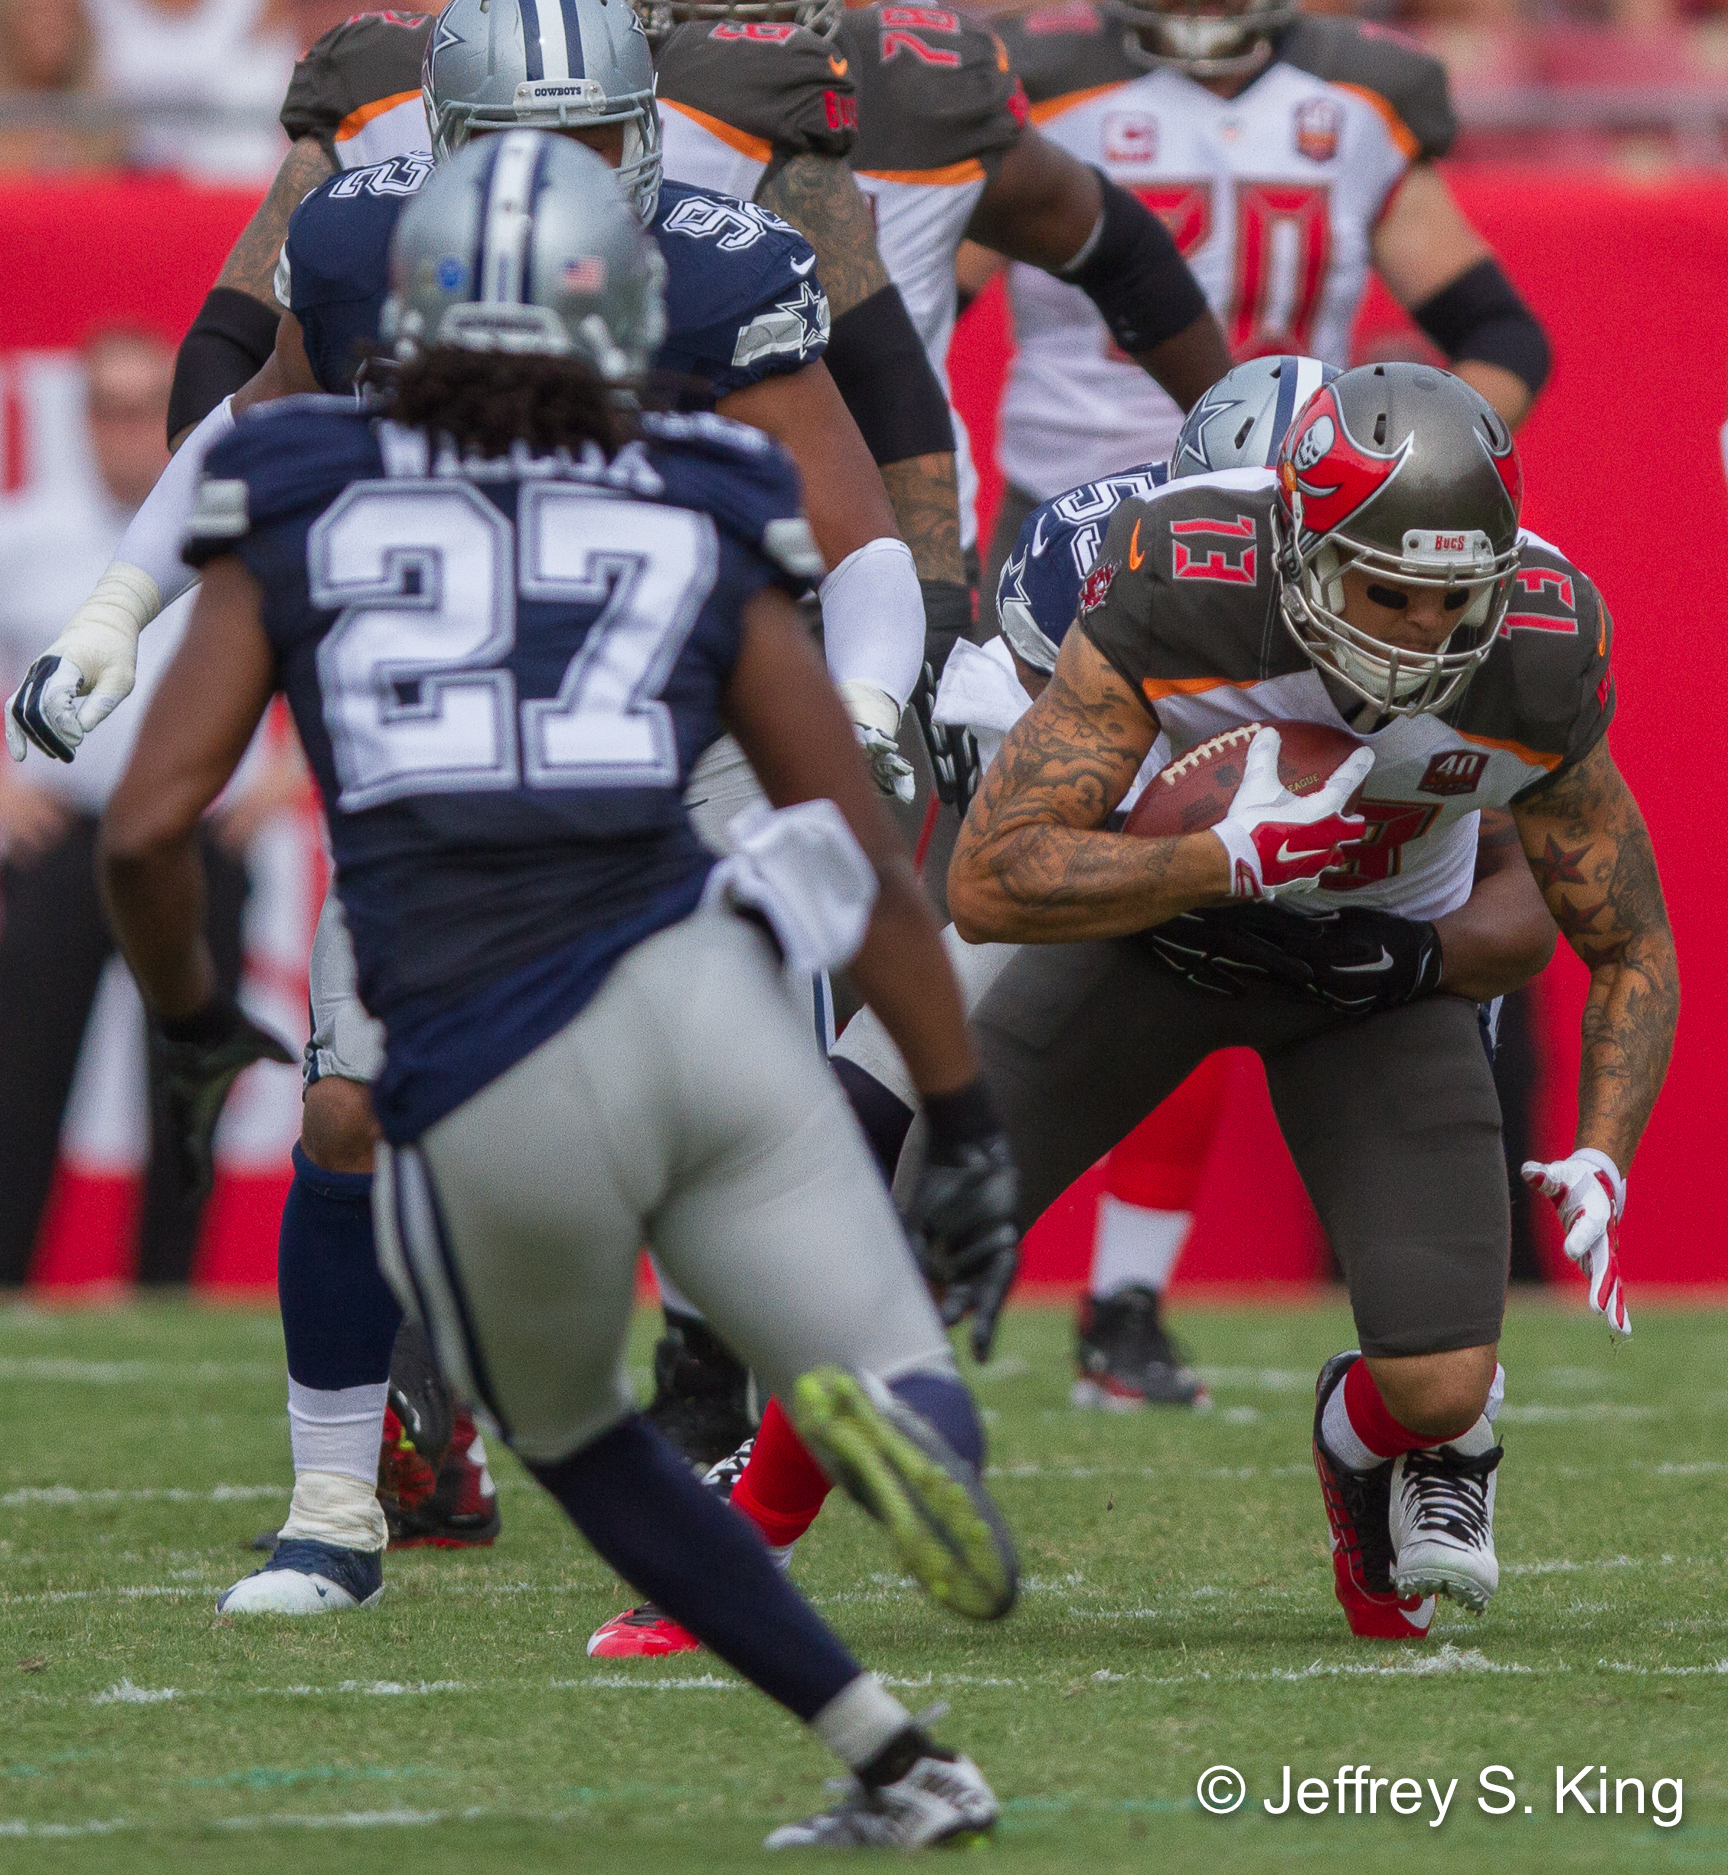 Evans drops some balls, but he's still a weapon for Bucs.